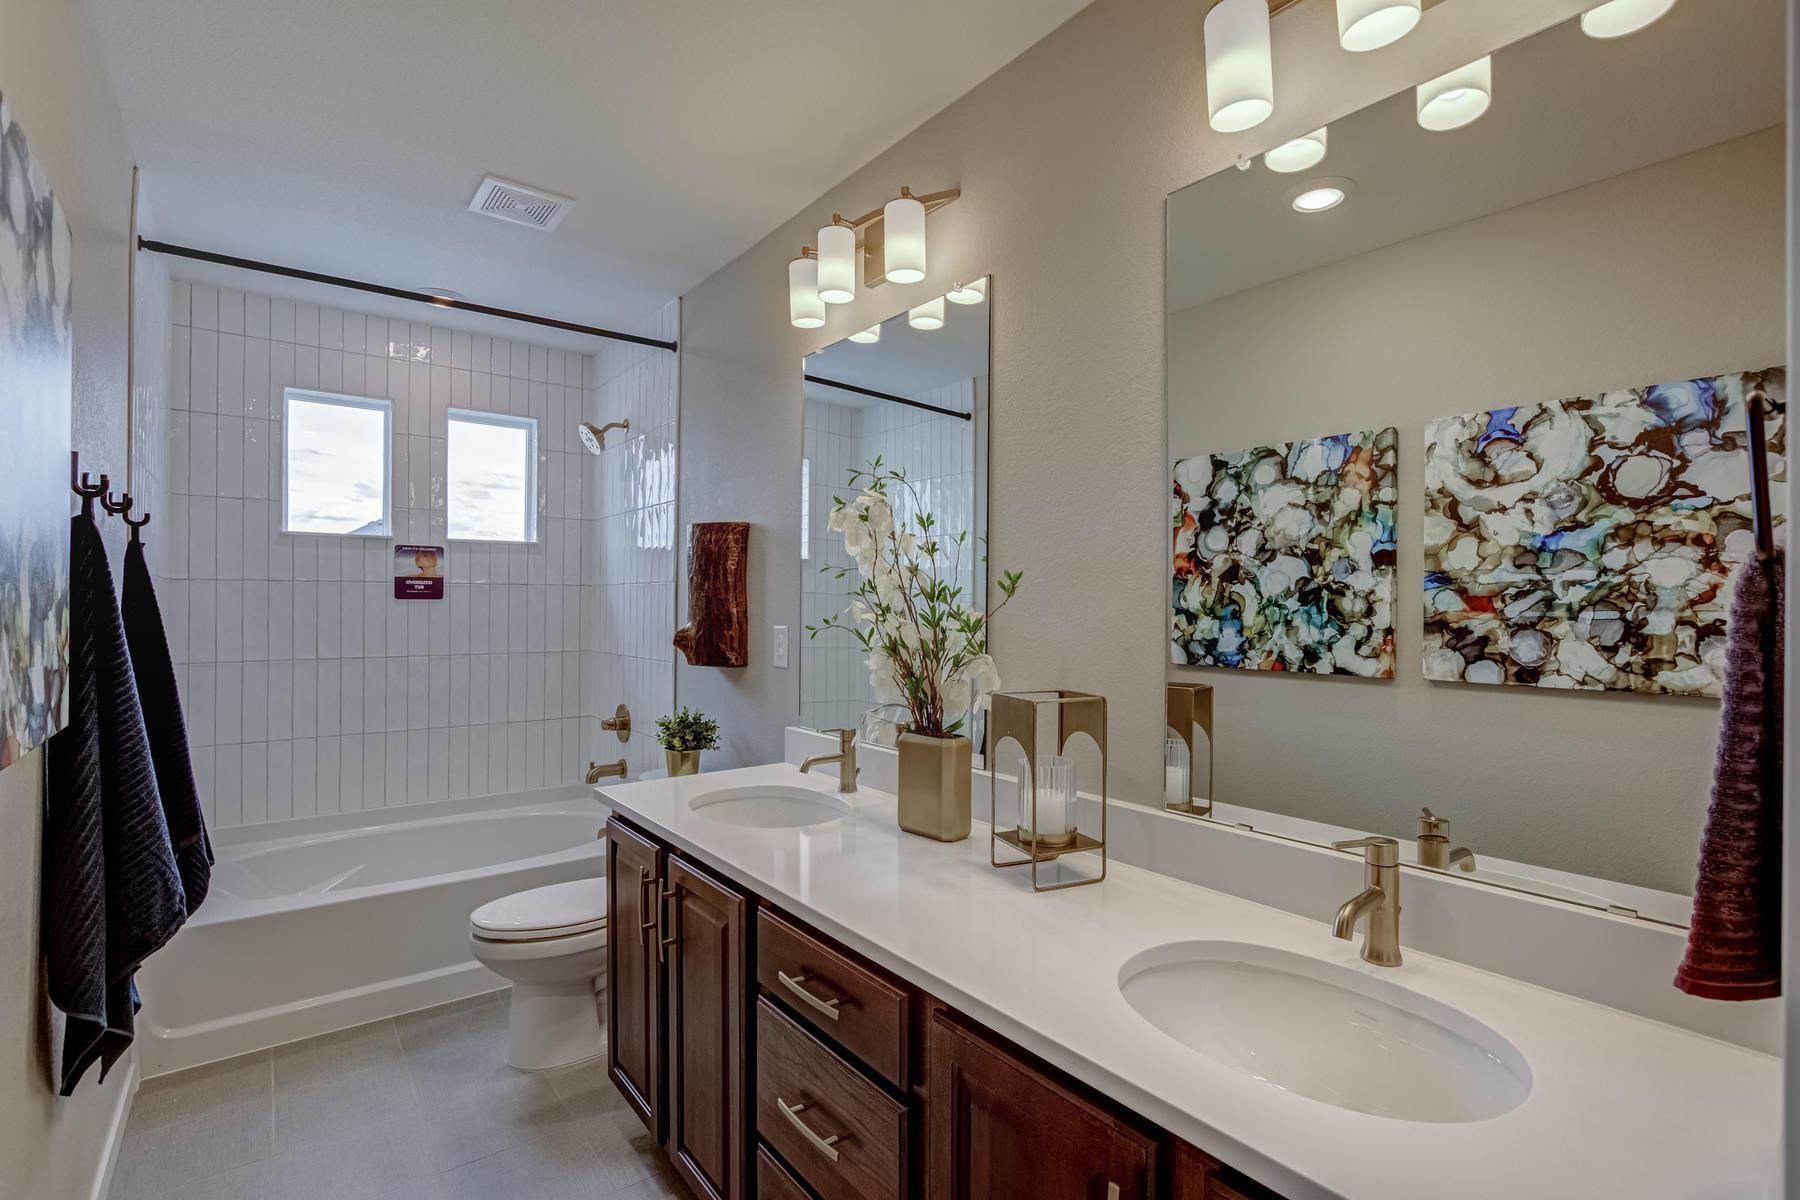 Bathroom featured in the BENNET By Oakwood Homes in Denver, CO